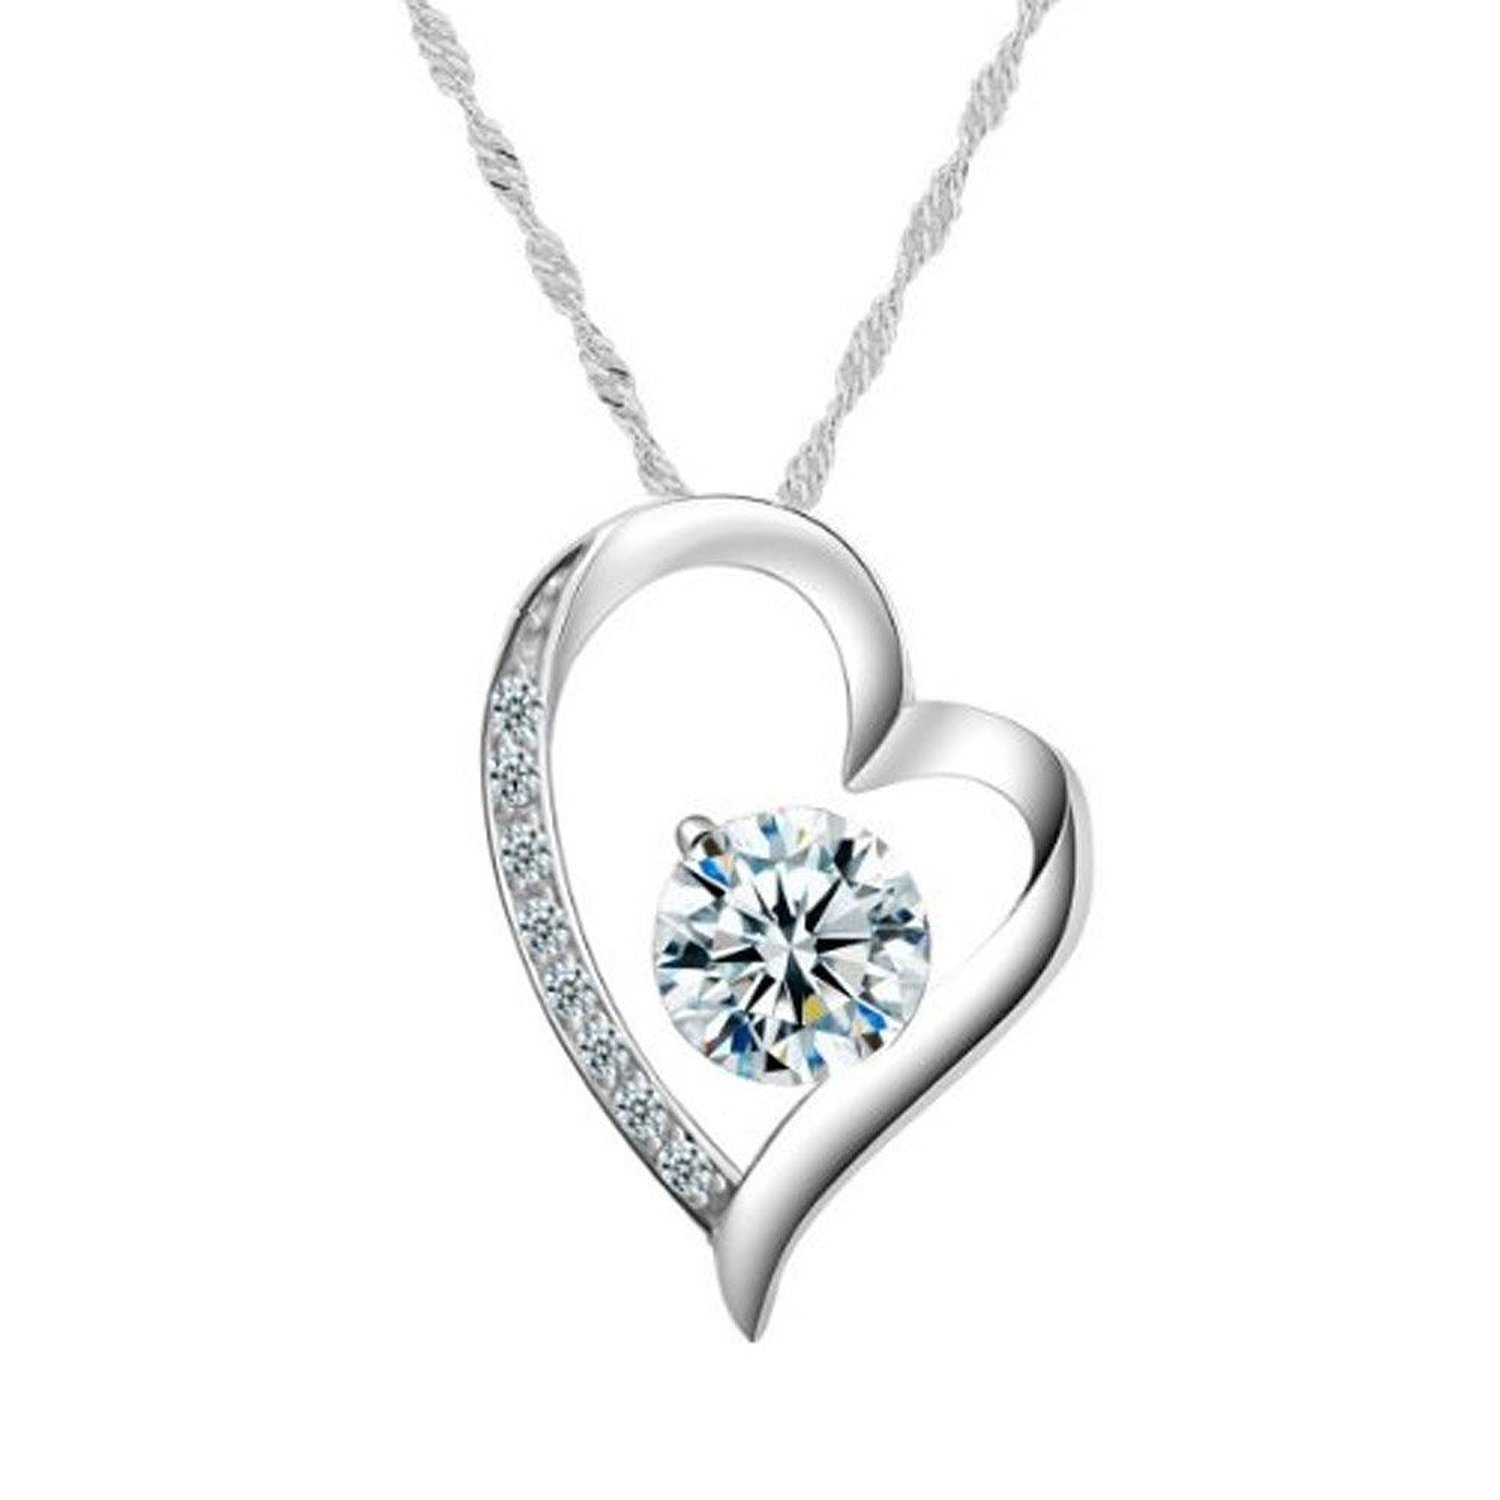 Chaomingzhen 925 Sterling Silver Rhodium Plated Cubic Zirconia